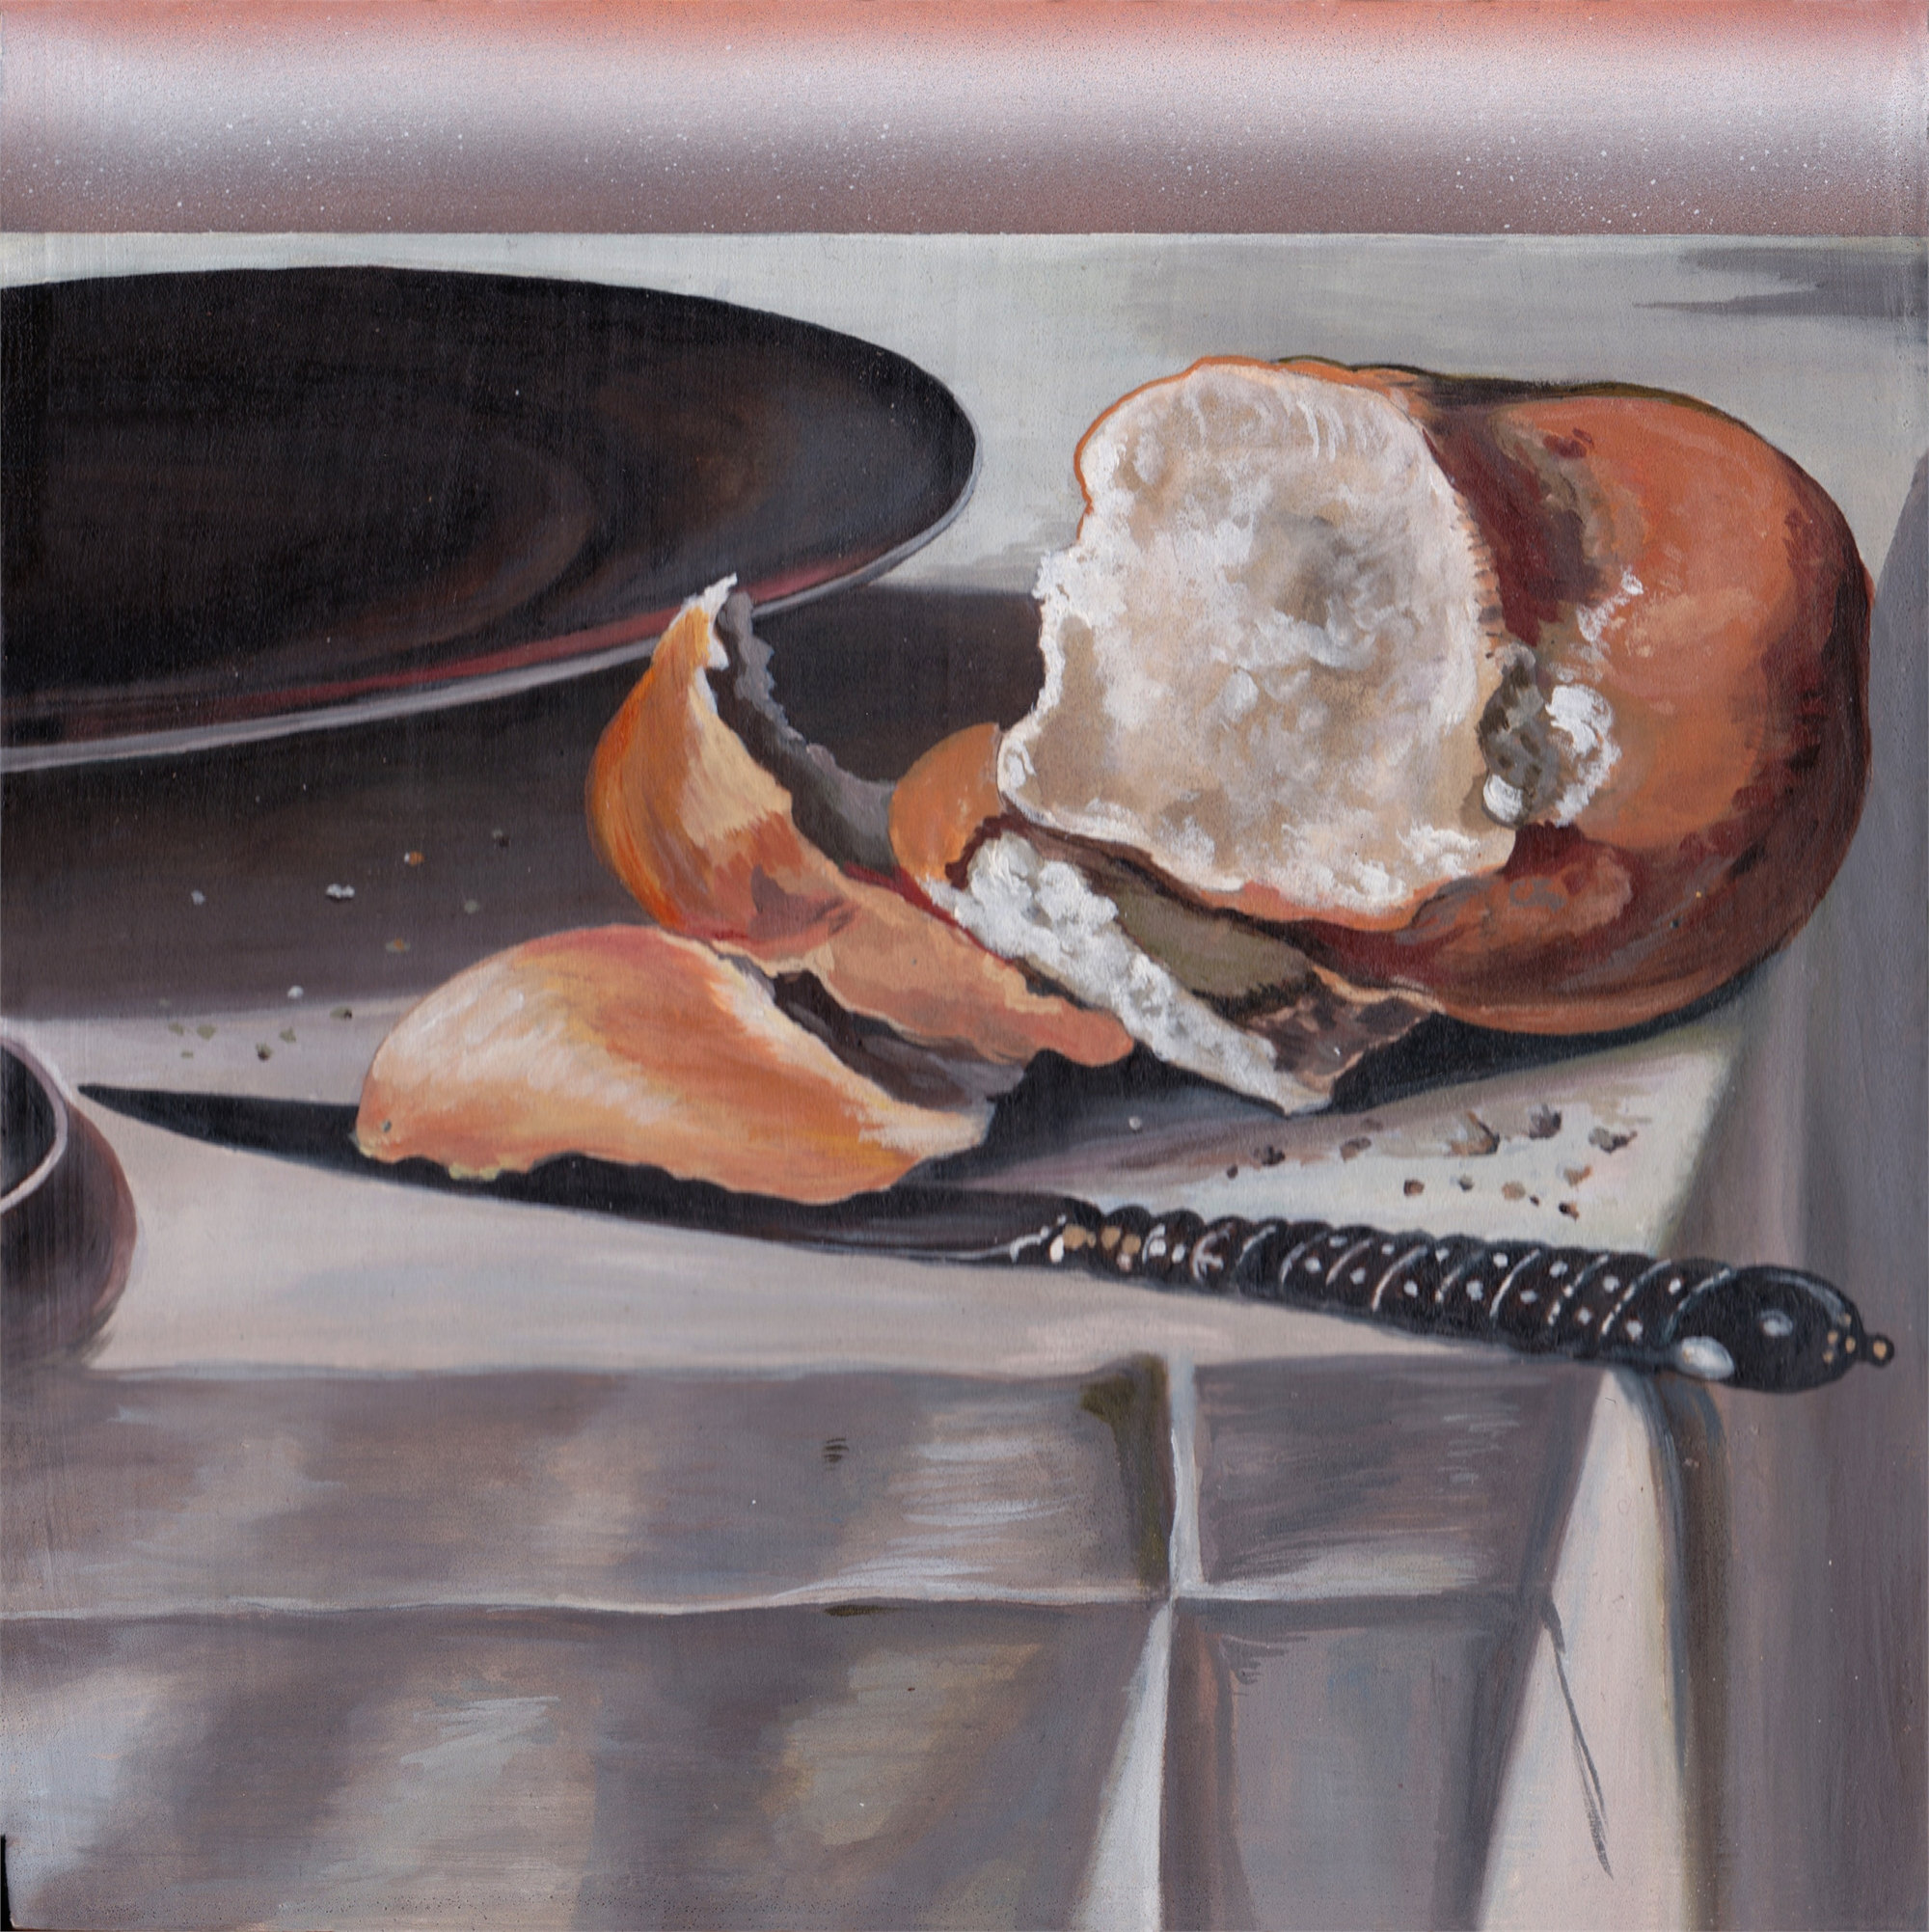 Man cannot live by bread alone by Melissa Furness